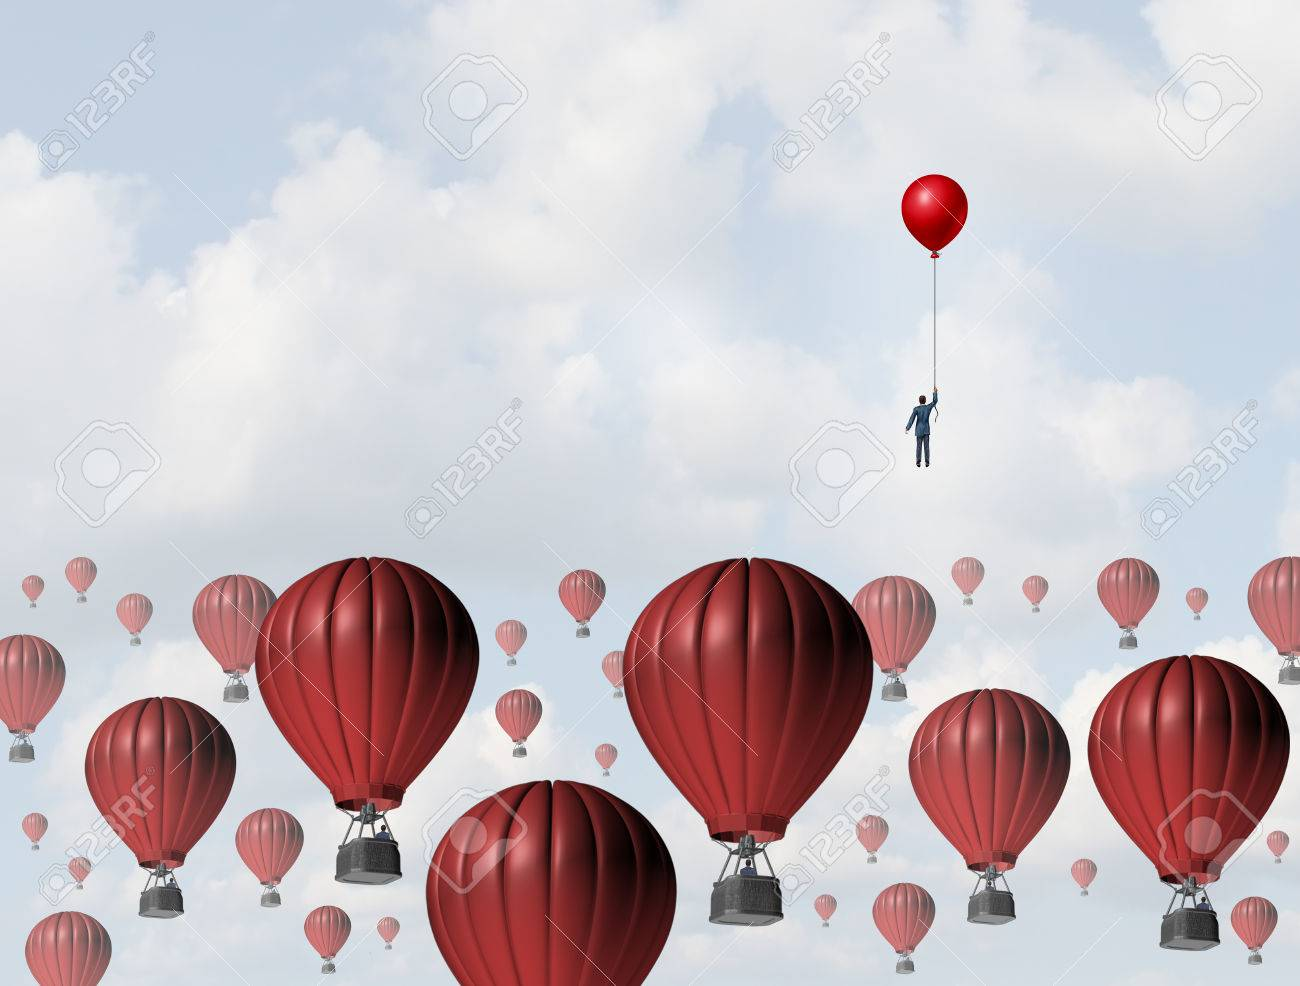 Increase efficiency and improve performance business concept as a businessman holding a balloon leading the race to the top against a group of slow hot airballoons by using a low cost winning strategy. - 52657728